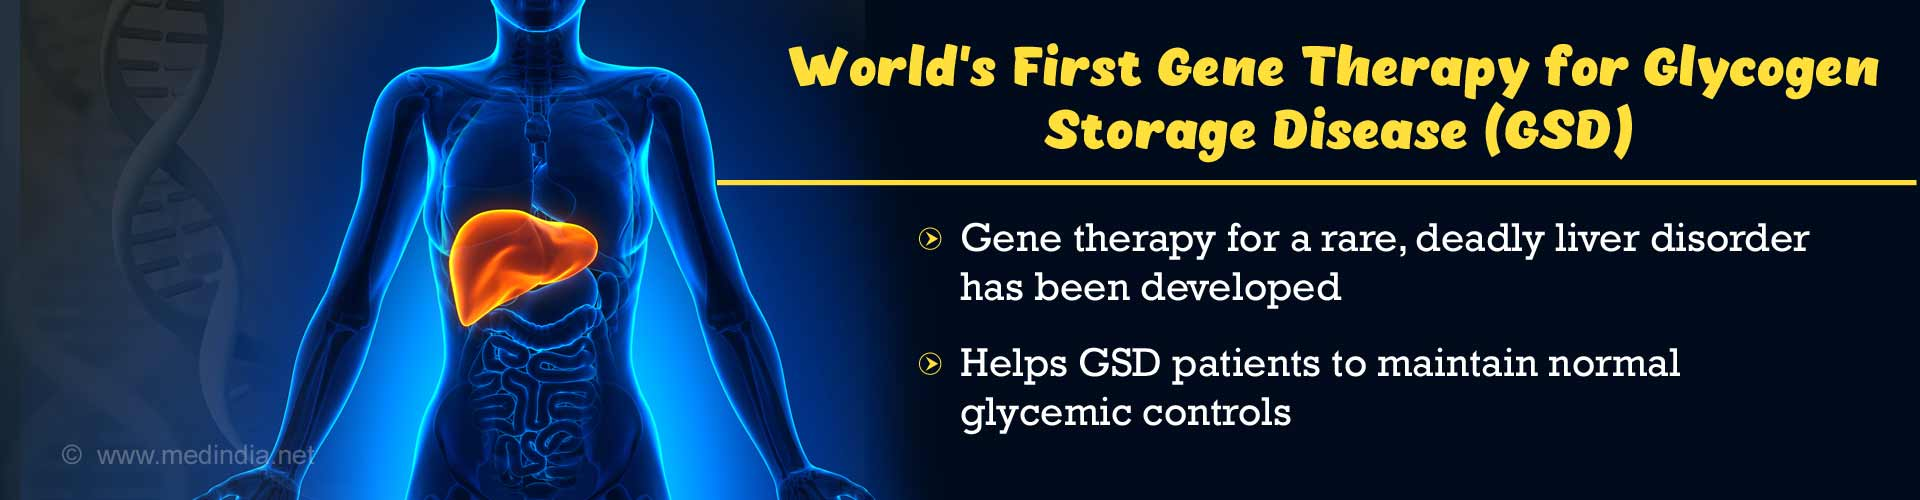 World's First Gene Therapy for a Rare, Deadly Liver Disorder